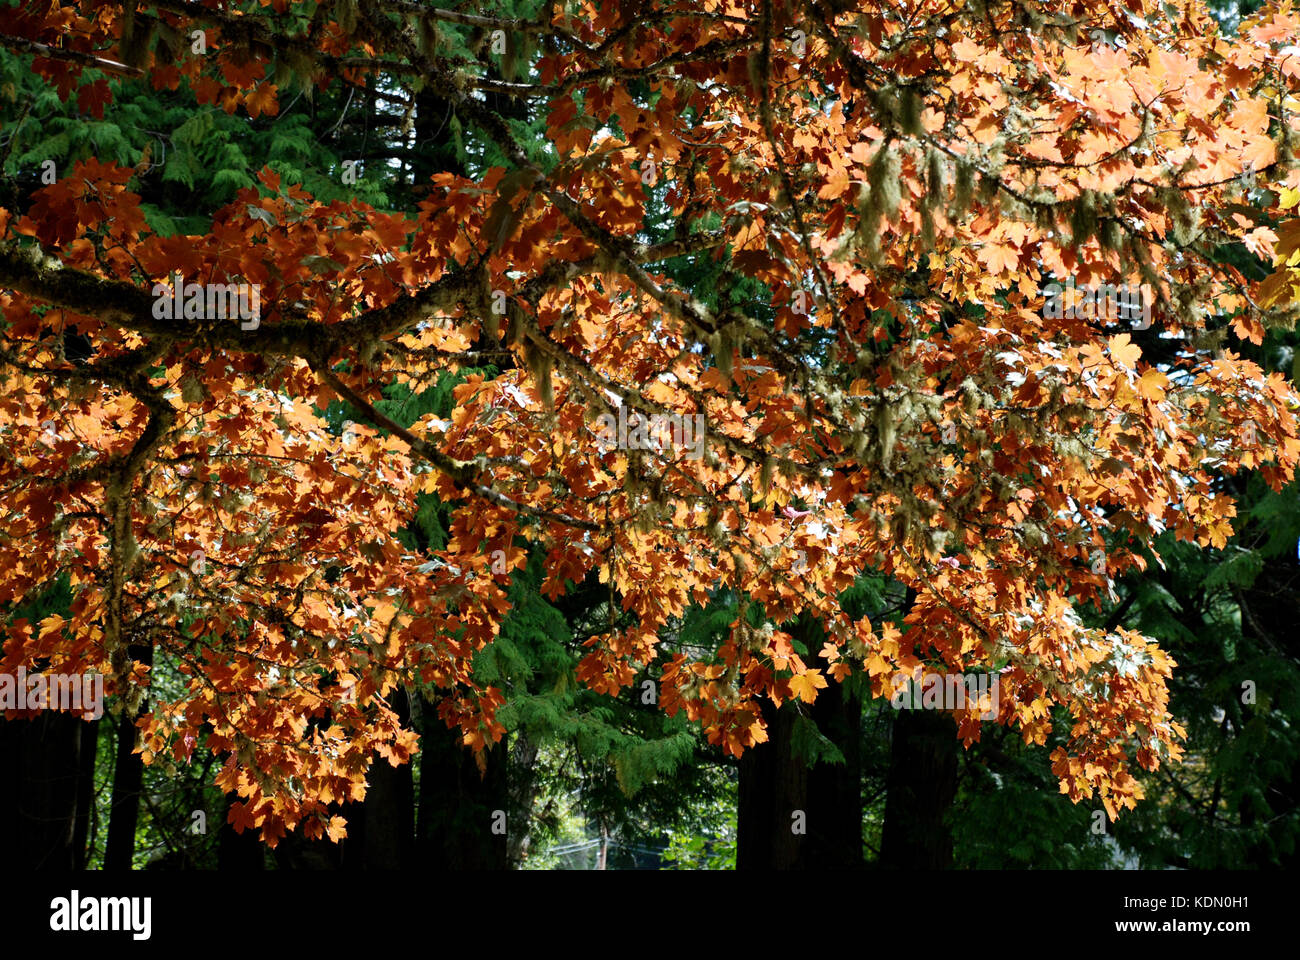 Autumn leaves at the Coast Collective, Colwood, B.C. Canada - Stock Image